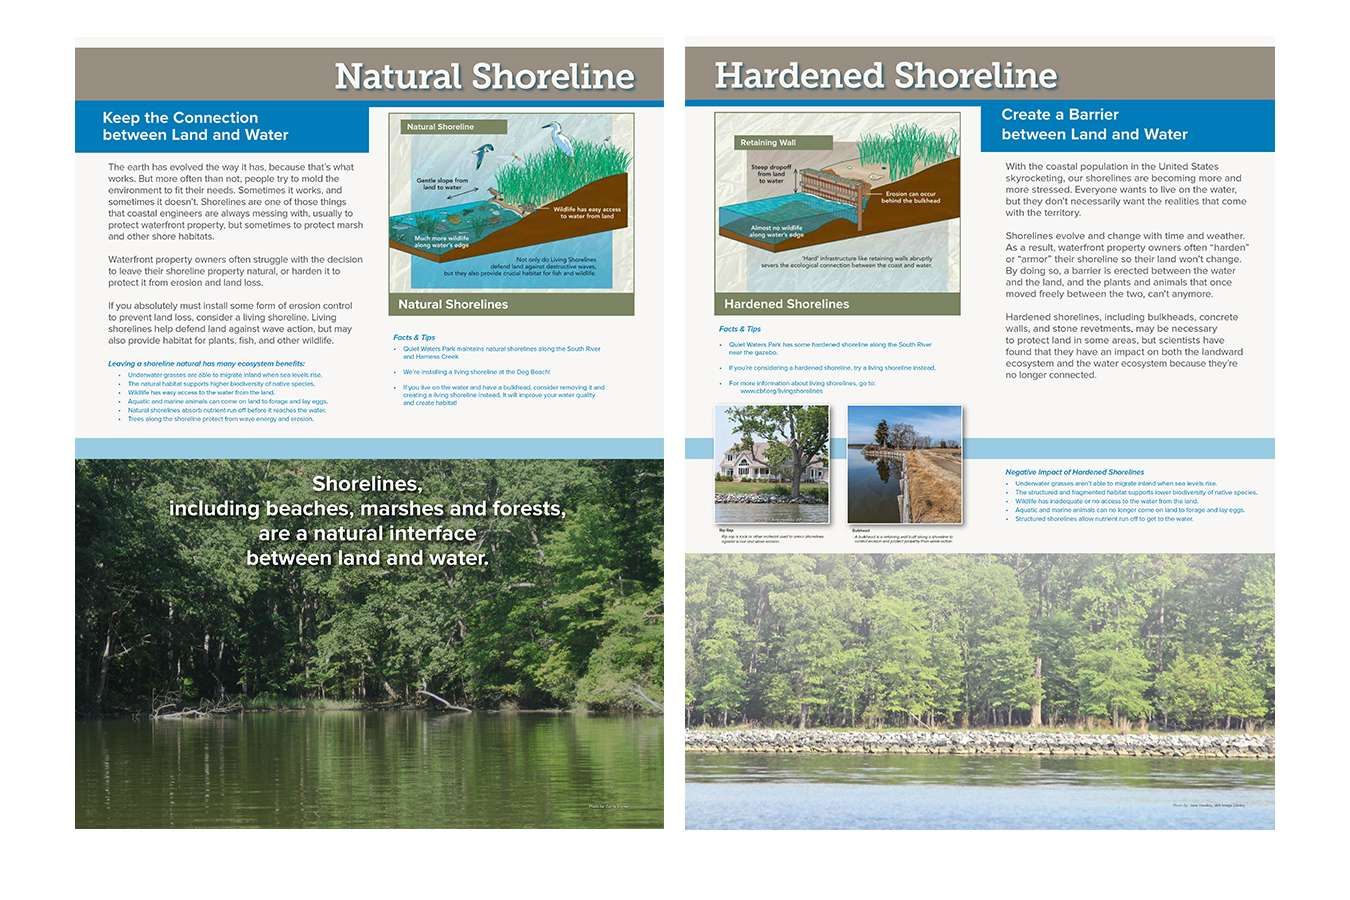 11G4 QWP 30x40 4 Nat Hard Shrline : Typical shoreline Panels compare and contrast environmental conditions at the park